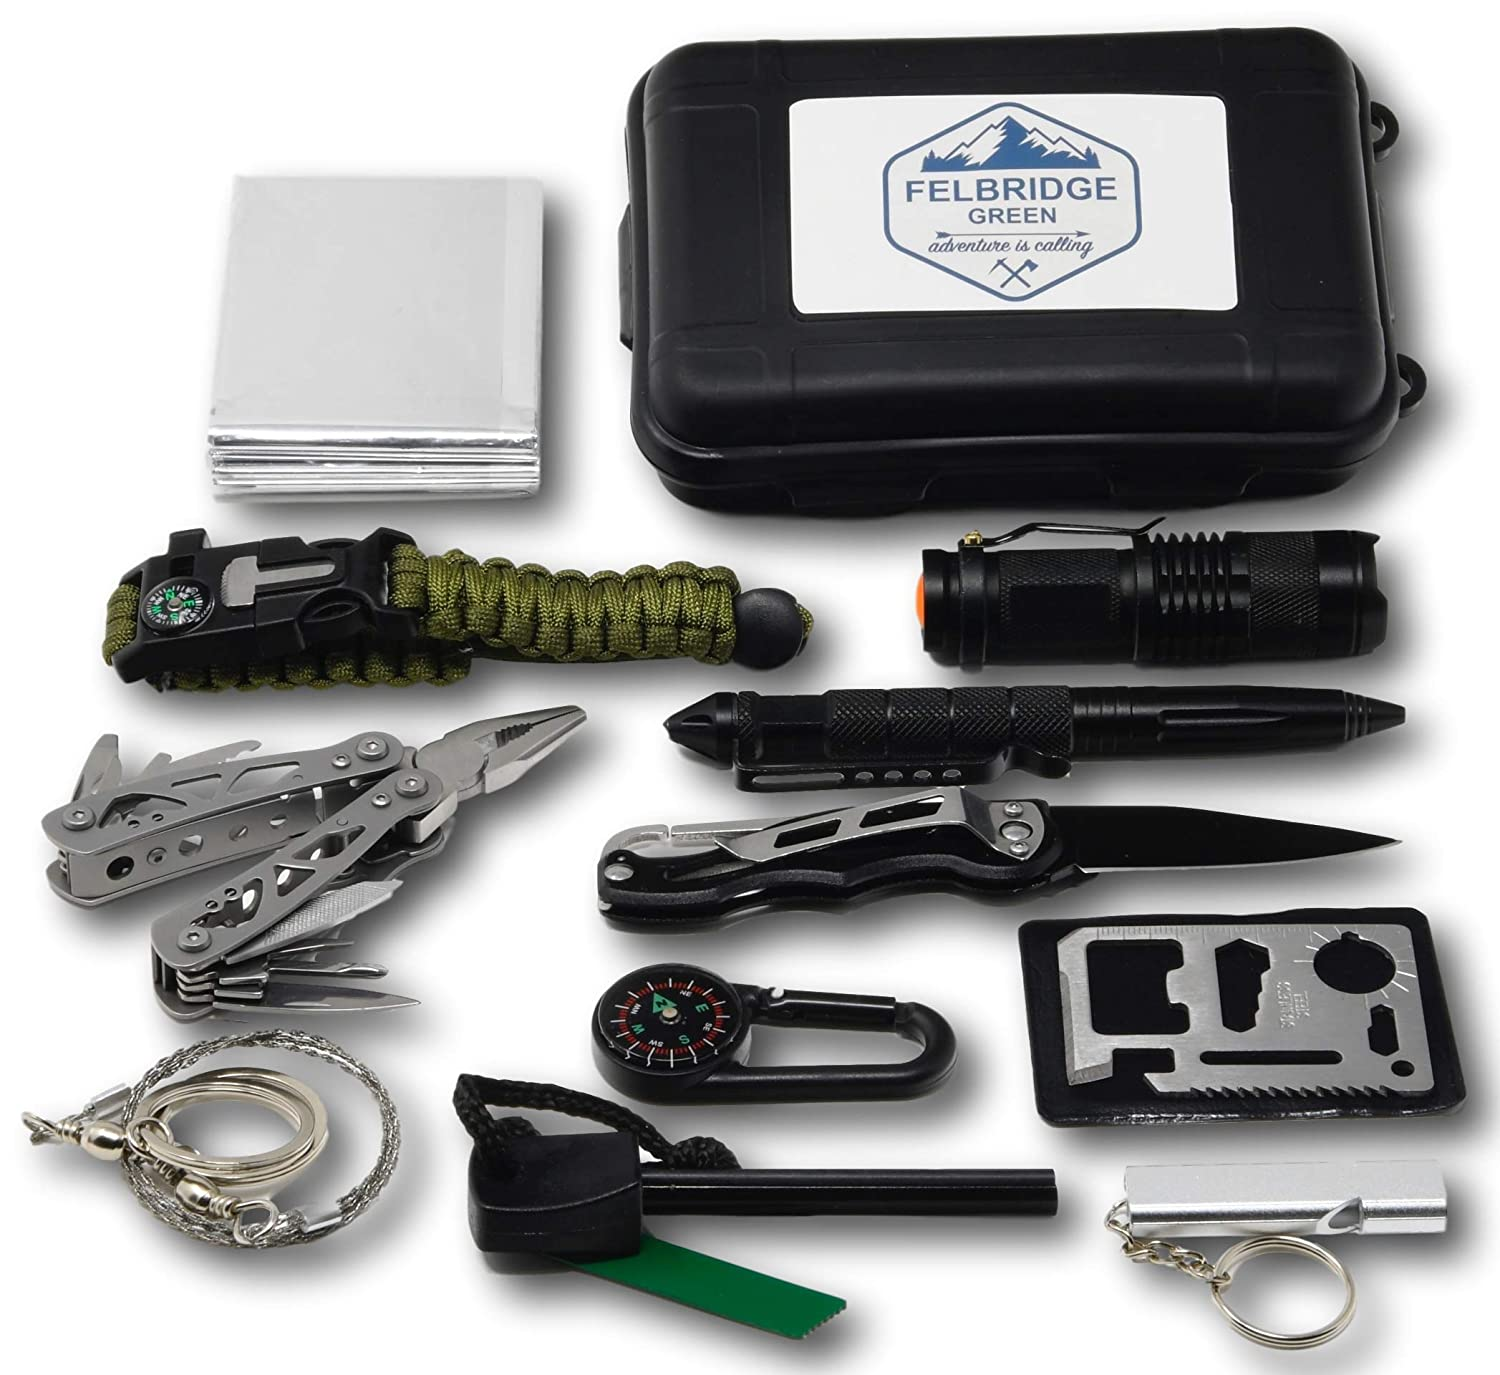 Felbridge Green Kits de Supervivencia en Emergencia con Alicates Plegables Multitool y Pulsera Paracord | para Acampar Bushcraft Militar y en Sus Aventuras al Aire Libre | Survival Kit 2.0